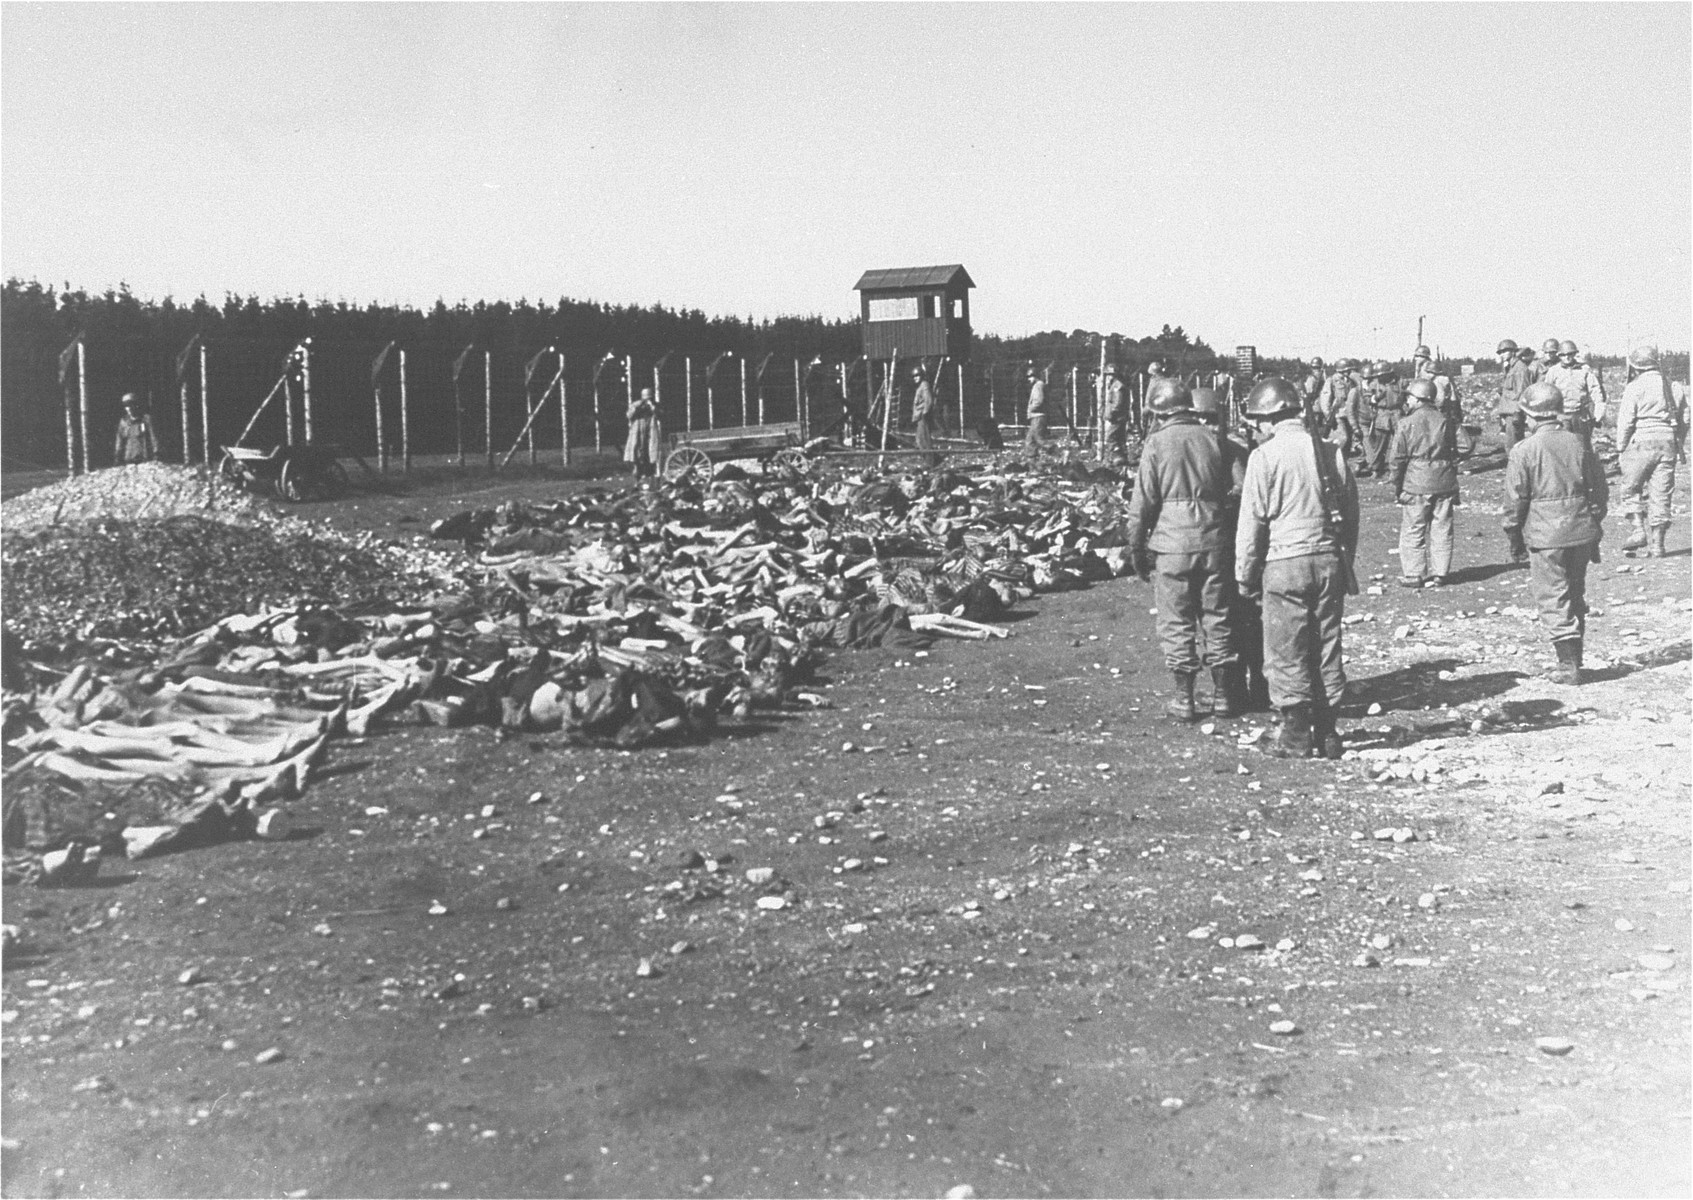 American soldiers view the bodies of Kaufering IV prisoners, which have been laid out along the fence of the camp.